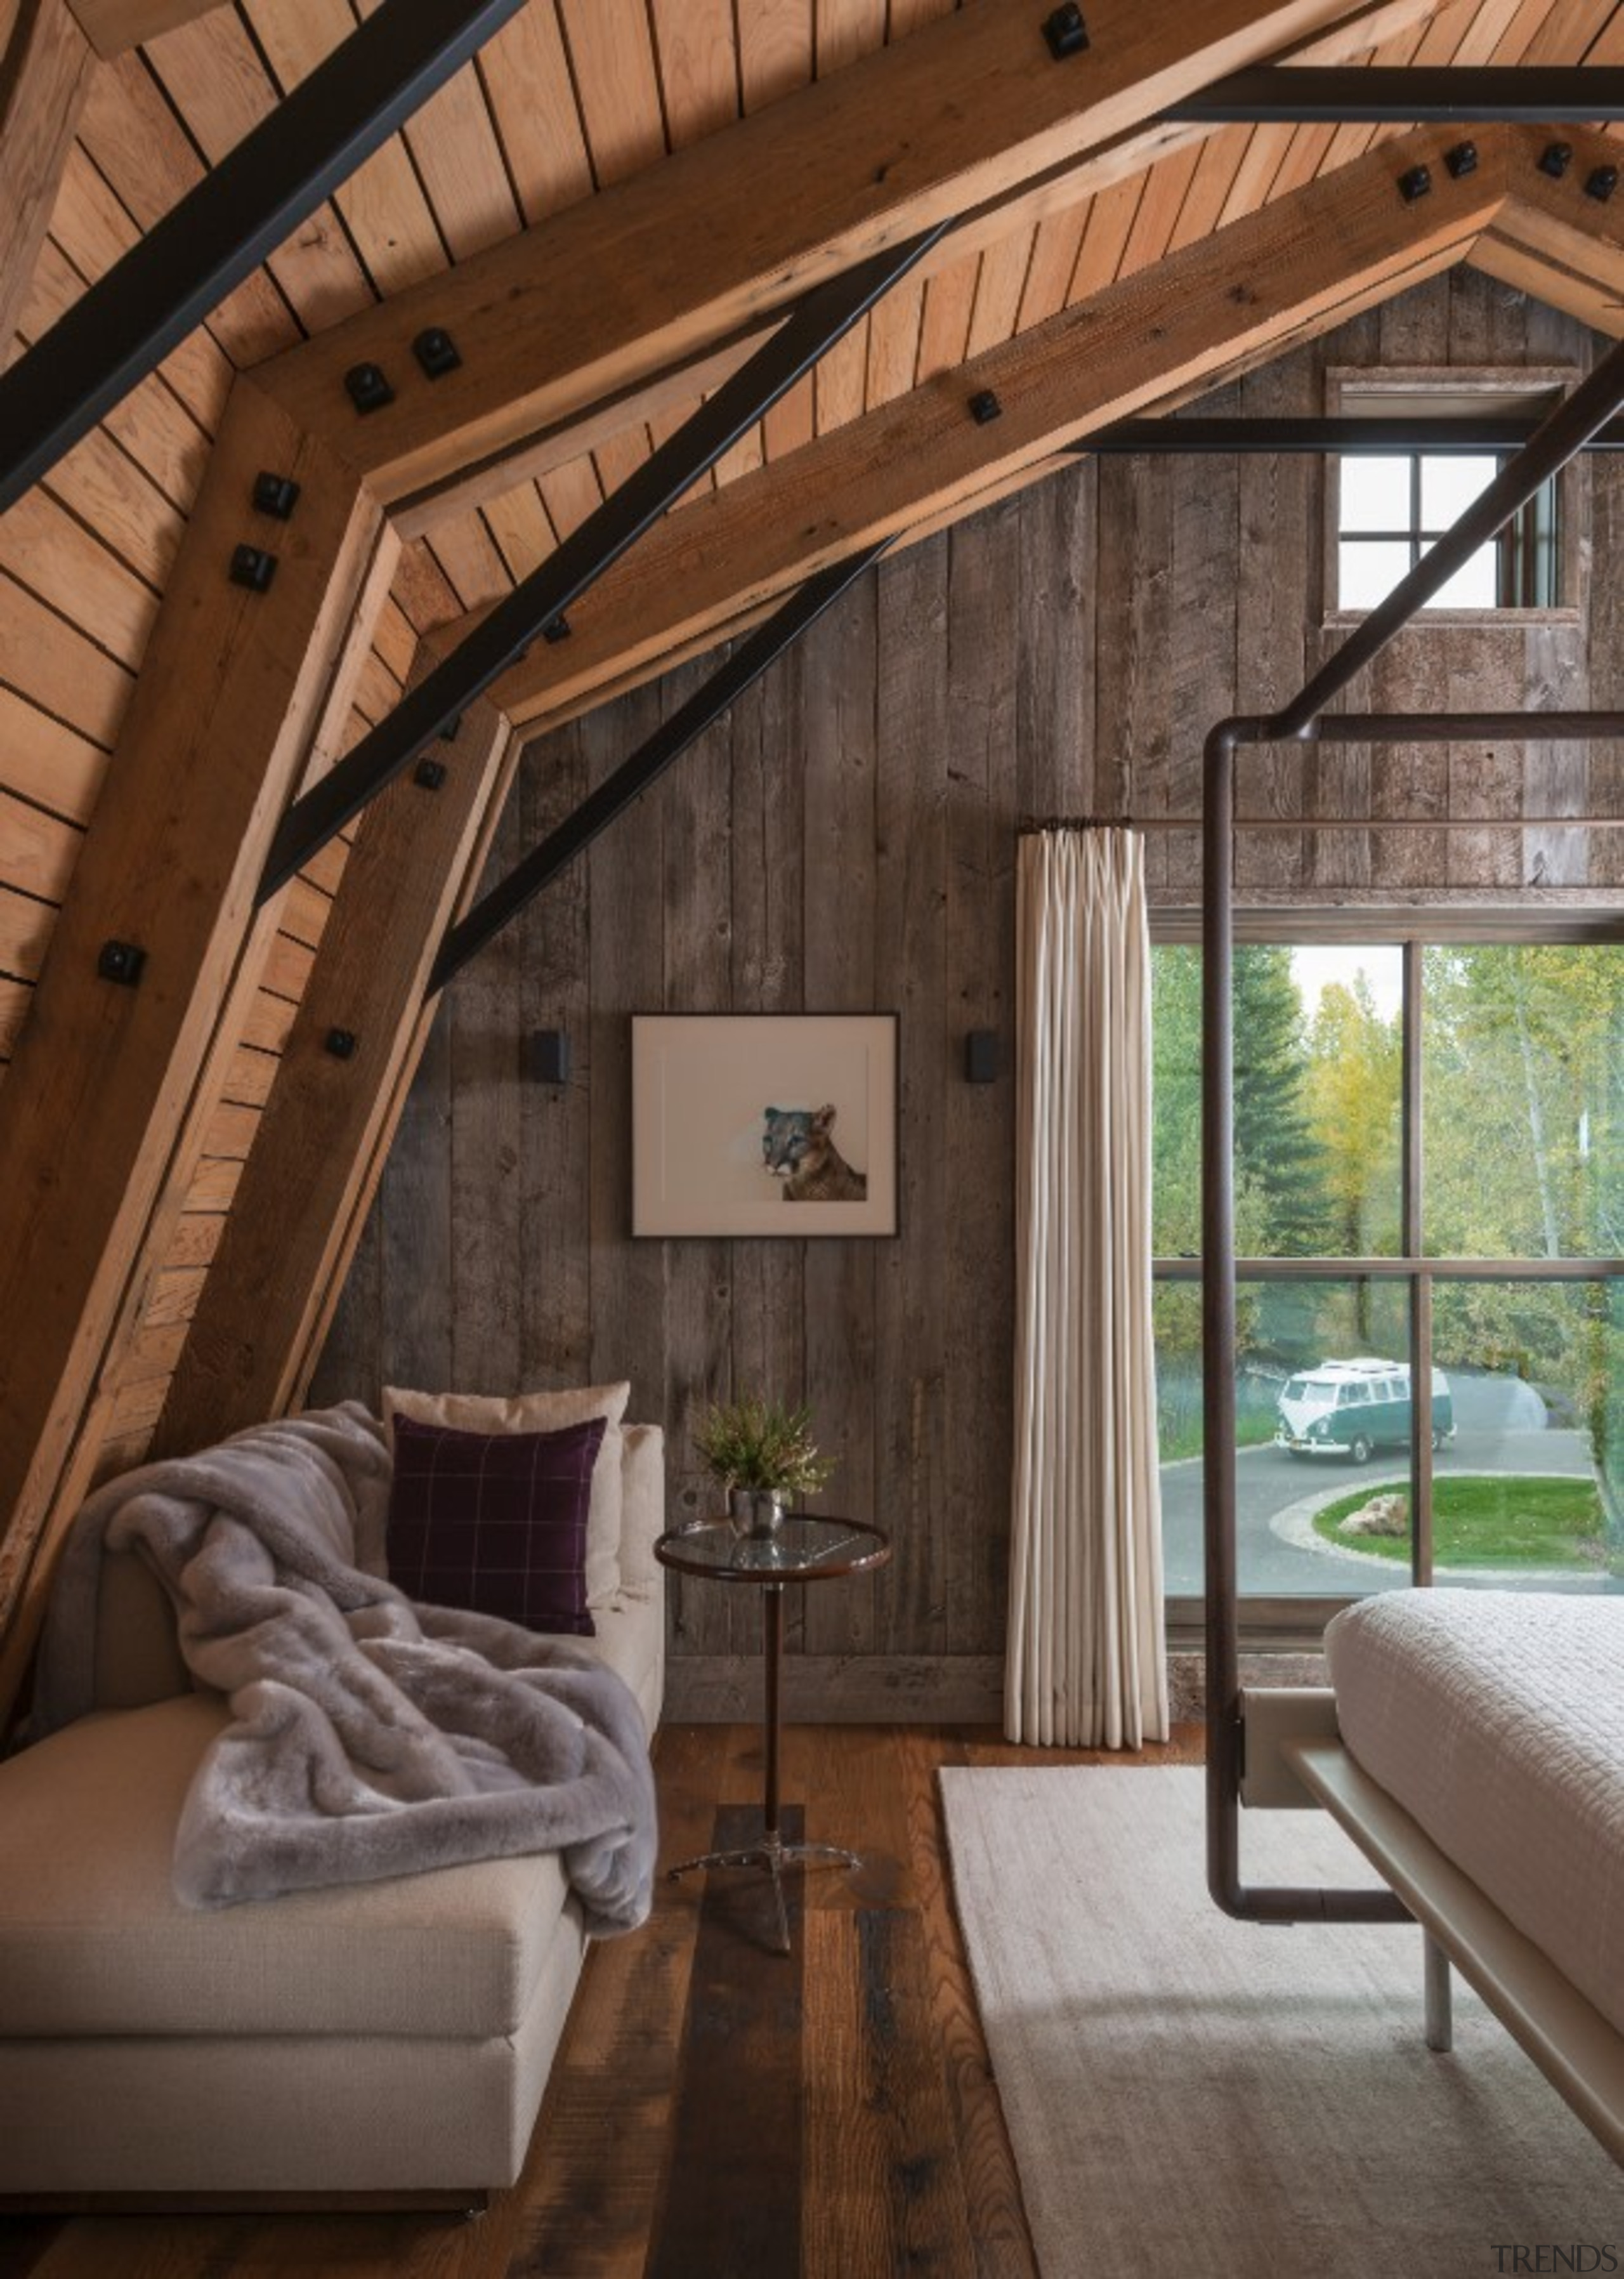 The bedroom looks out onto the driveway - architecture, beam, ceiling, home, house, interior design, living room, room, window, wood, brown